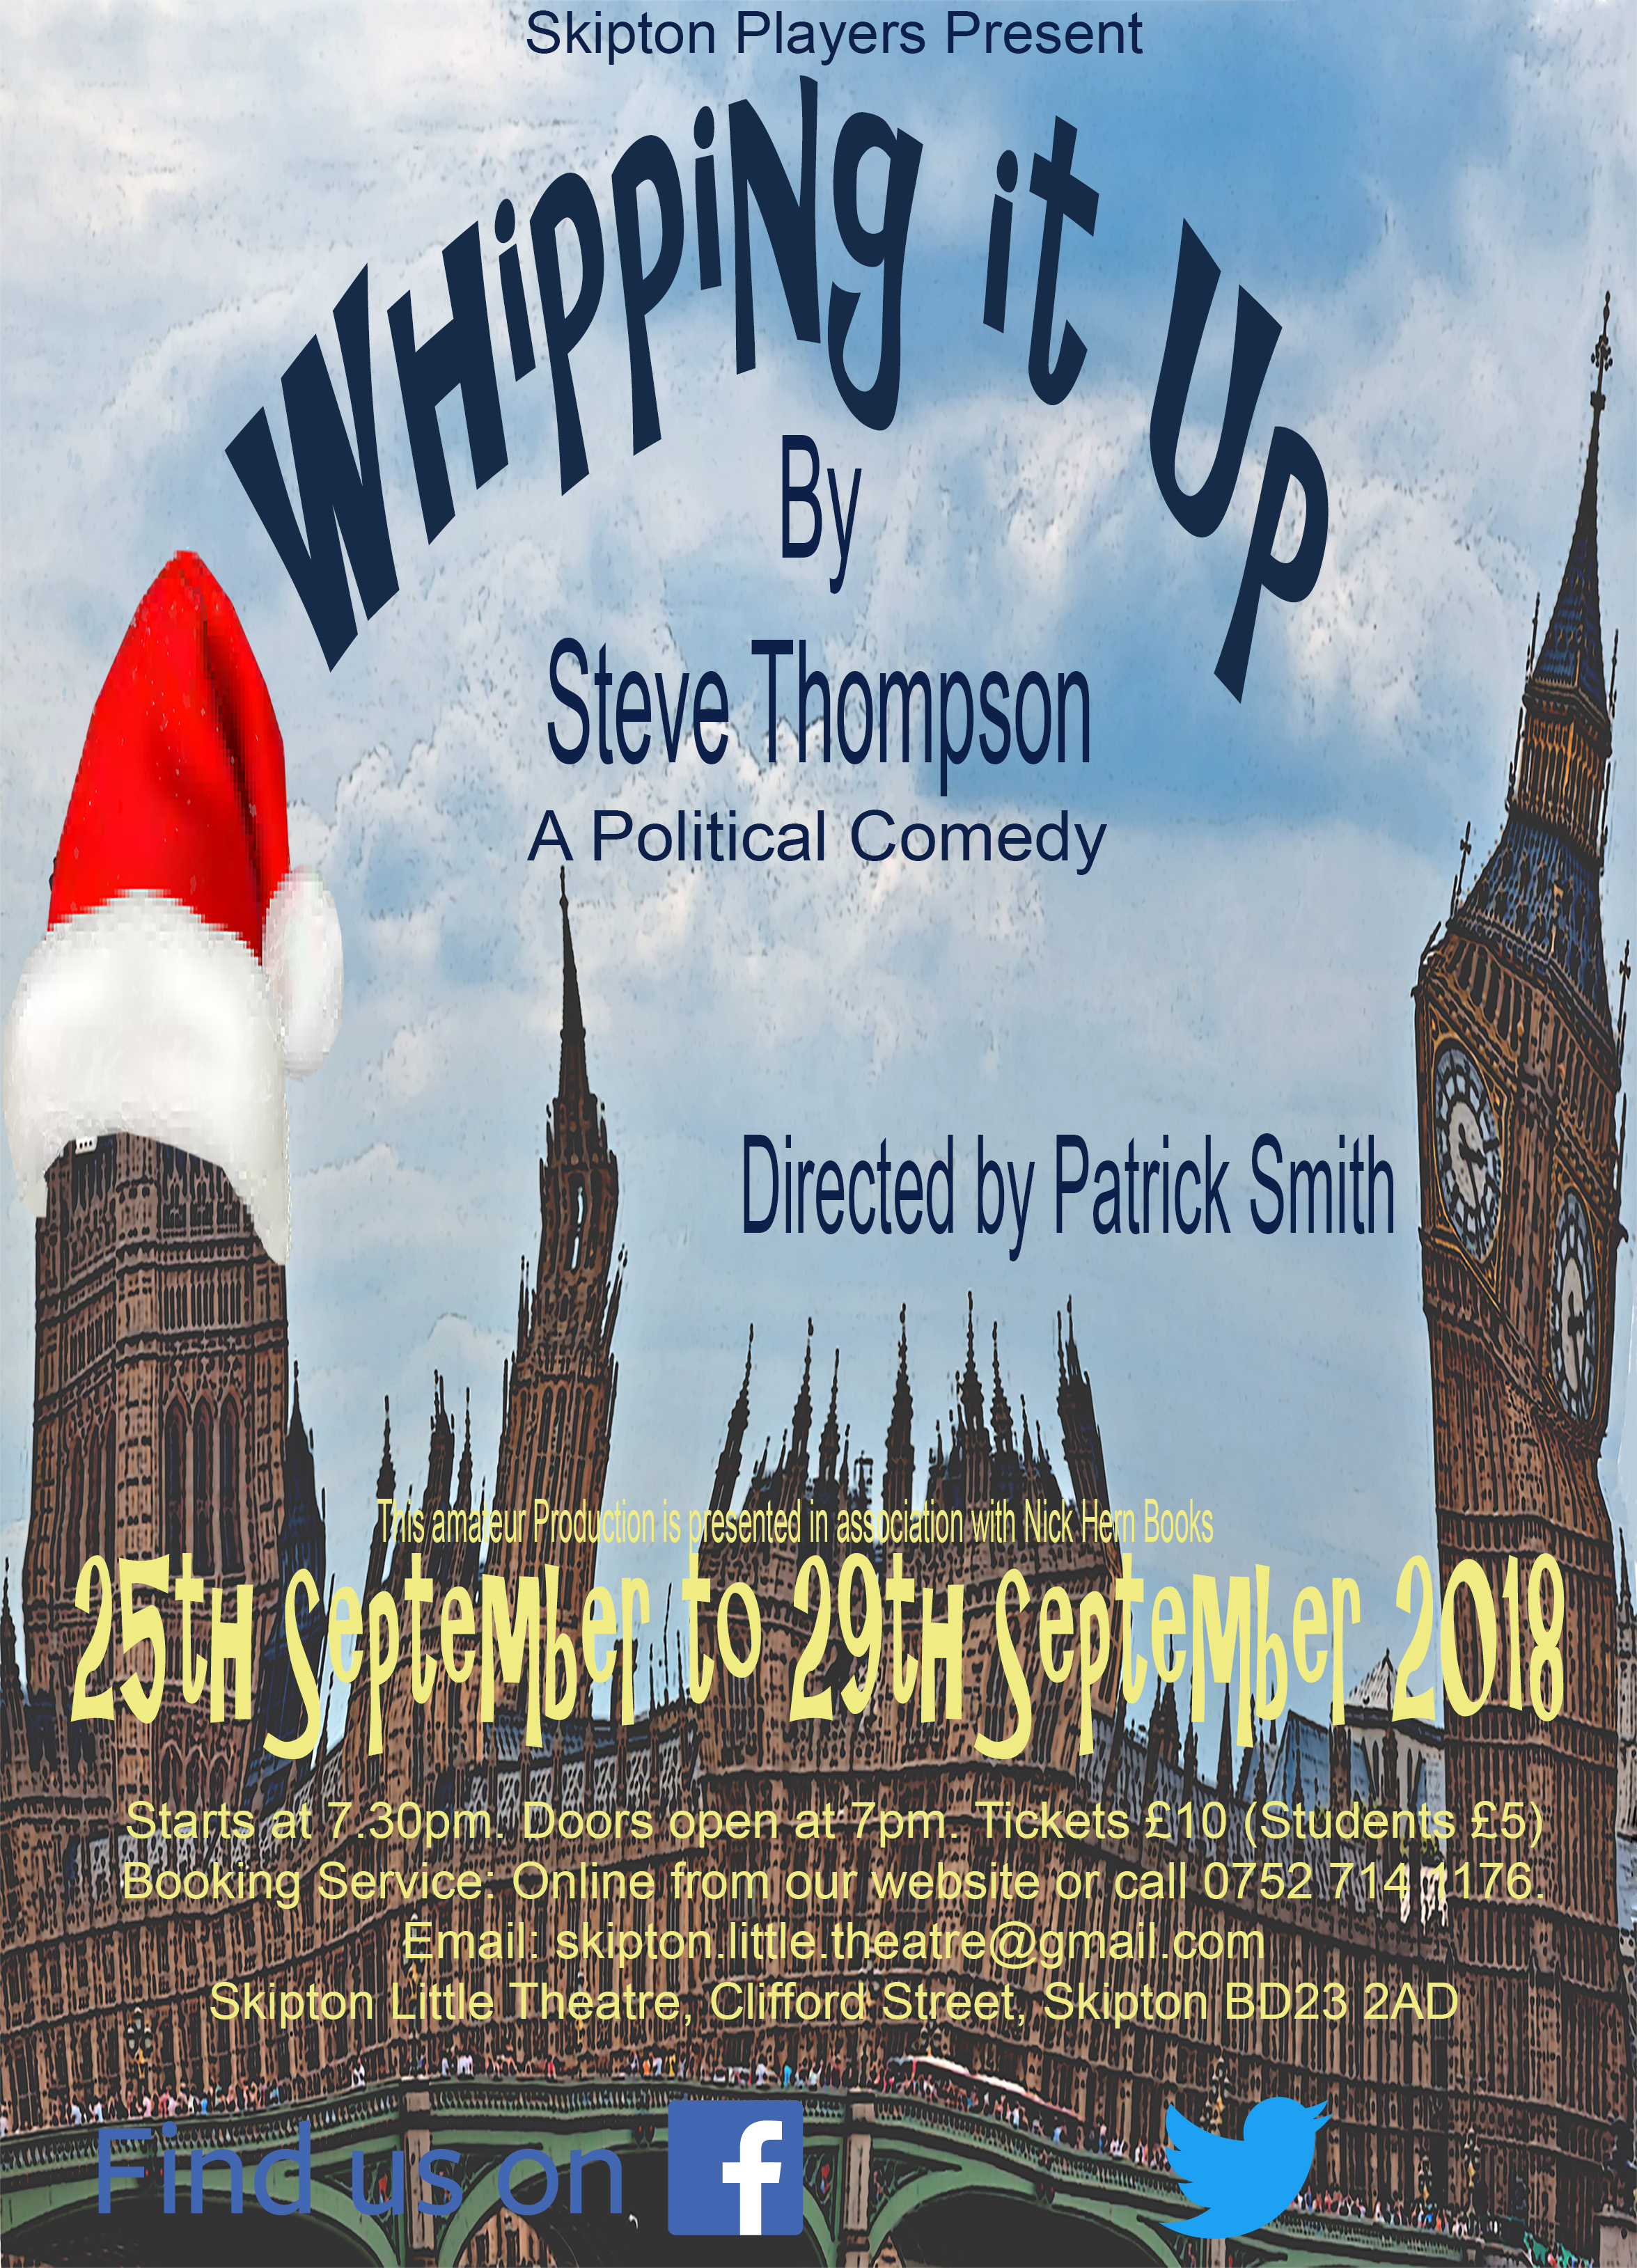 Whipping it Up - A Political Comedy by Steve Thompson